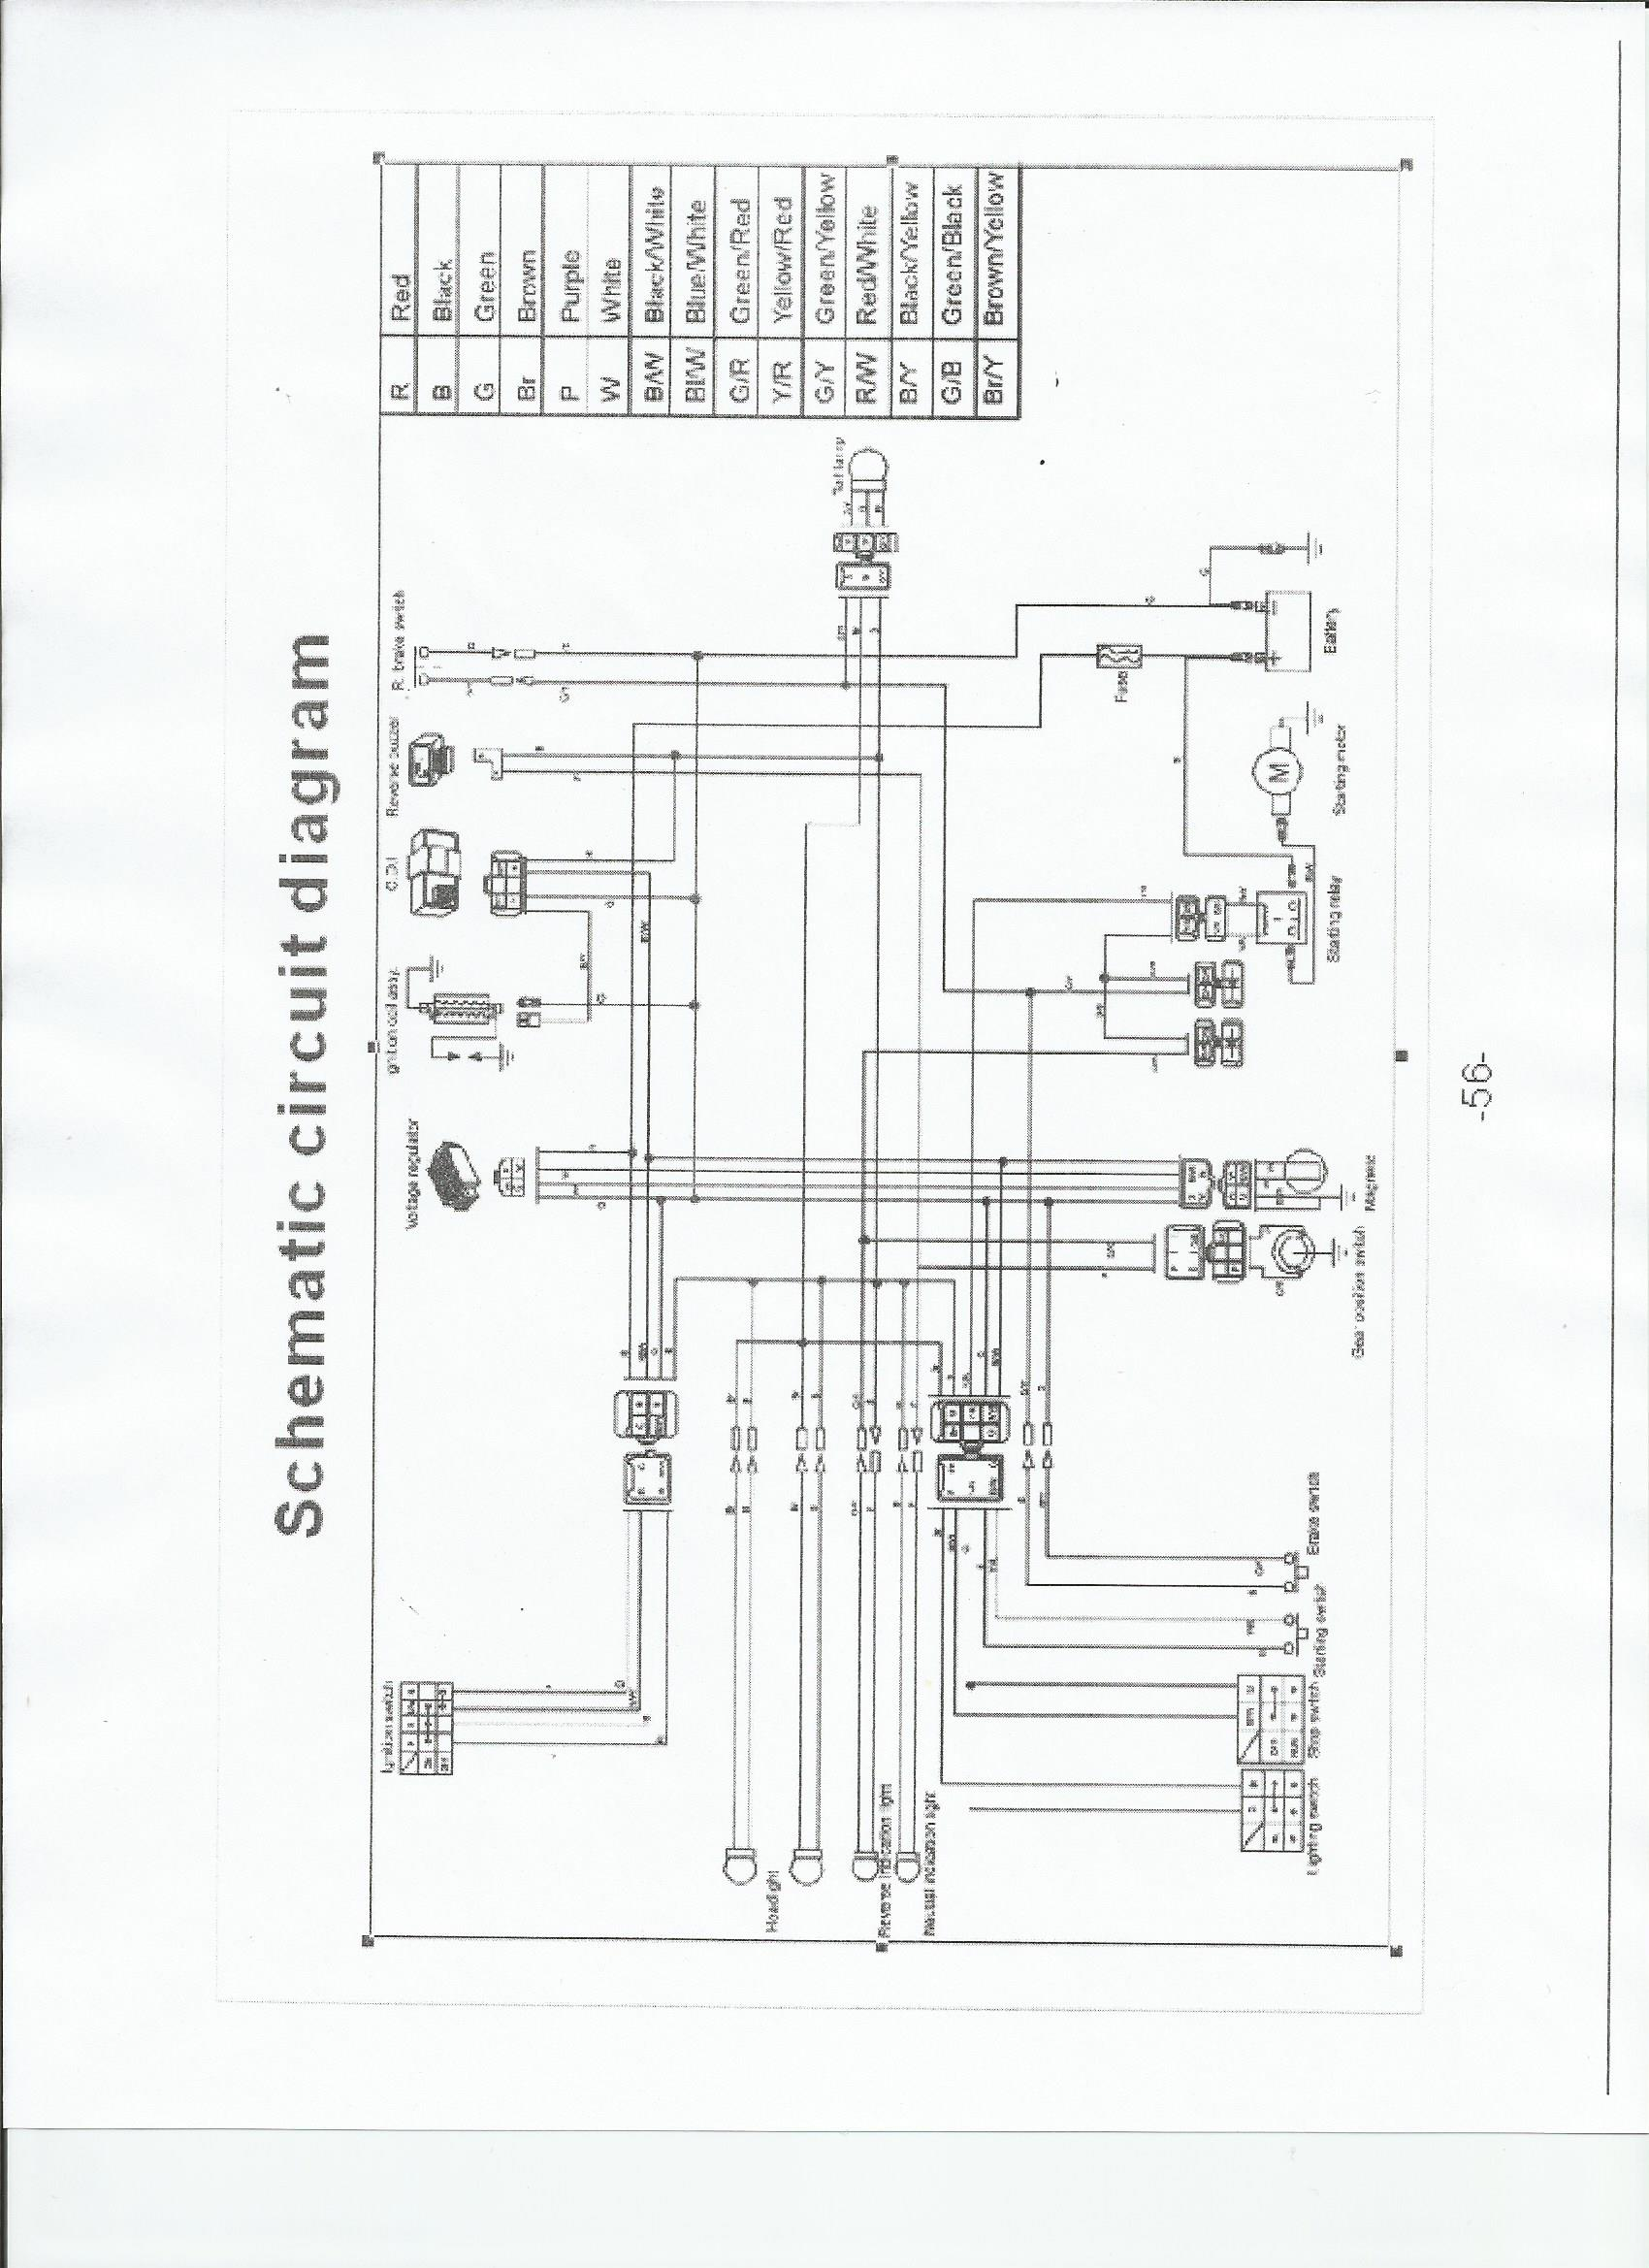 taotao mini and youth atv wiring schematic \u2013 familygokarts support Sunl SLA 90 Wiring Diagram tao tao wiring schematic jpg